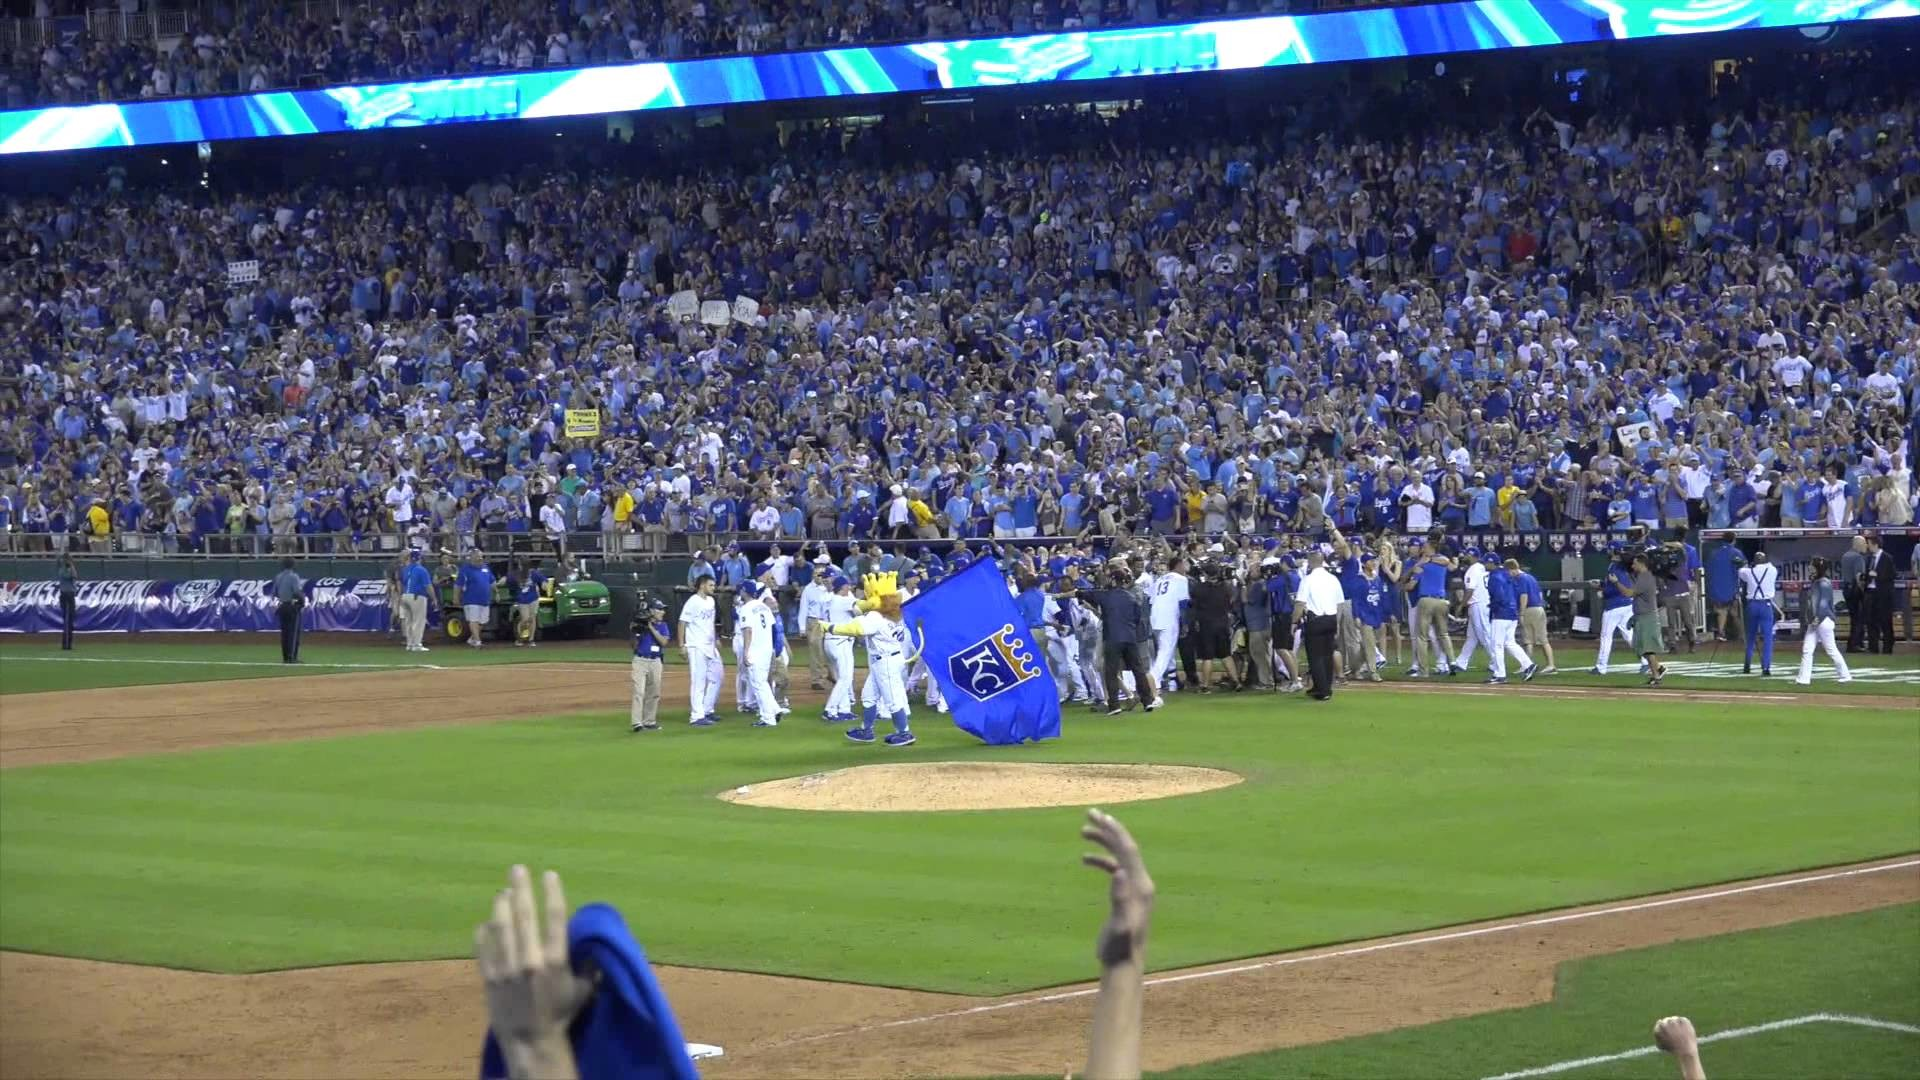 1920x1080 KC Royals Win! Royals Find Blue October! A's @ Royals 2014 Wild Card Game